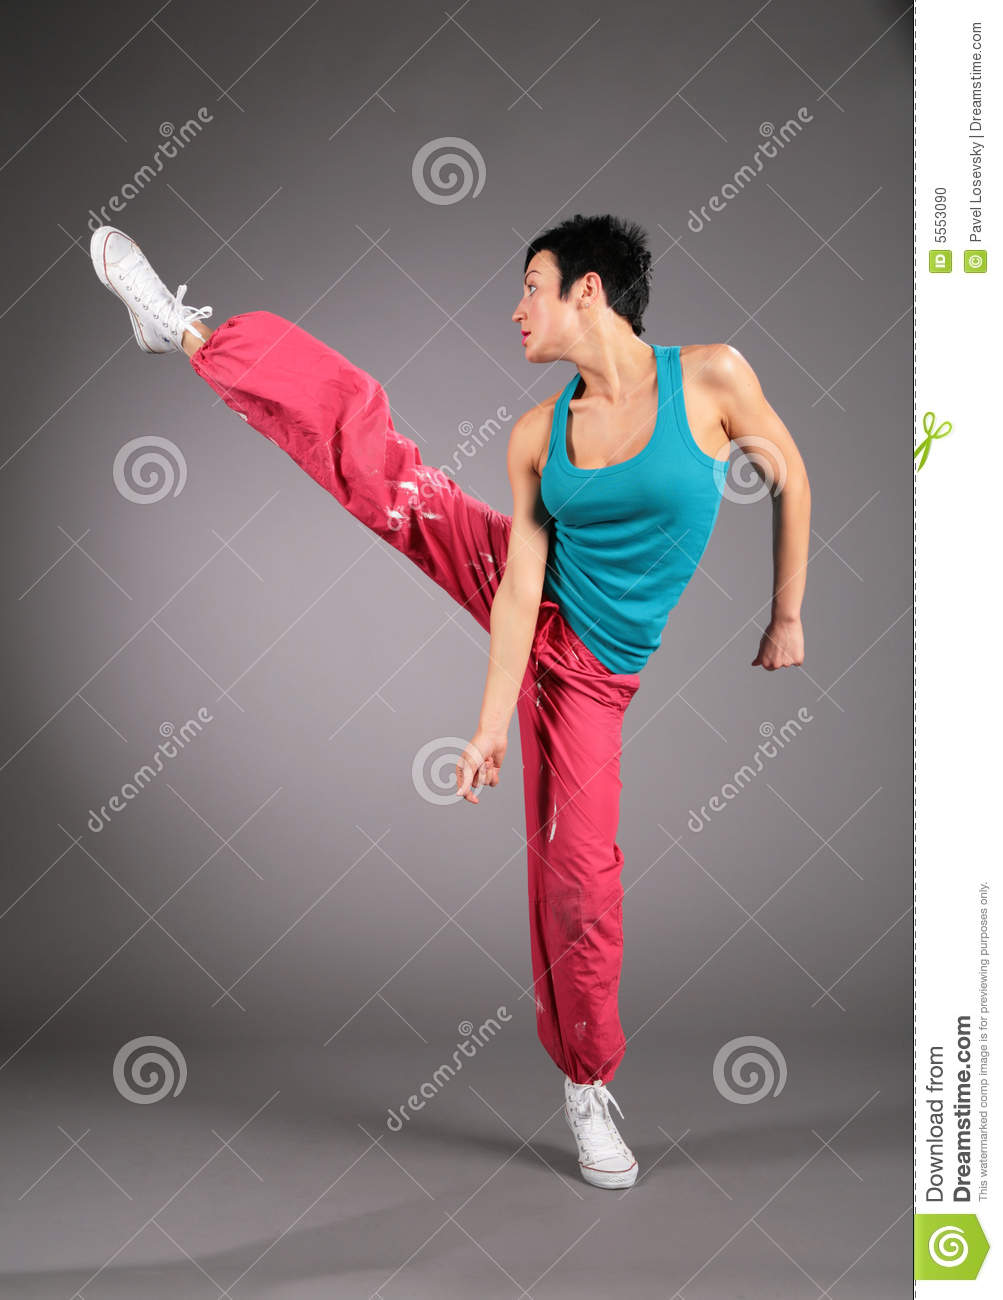 Dance Hip Hop Girl Stock Photo Image Of Adult, Casual -1822